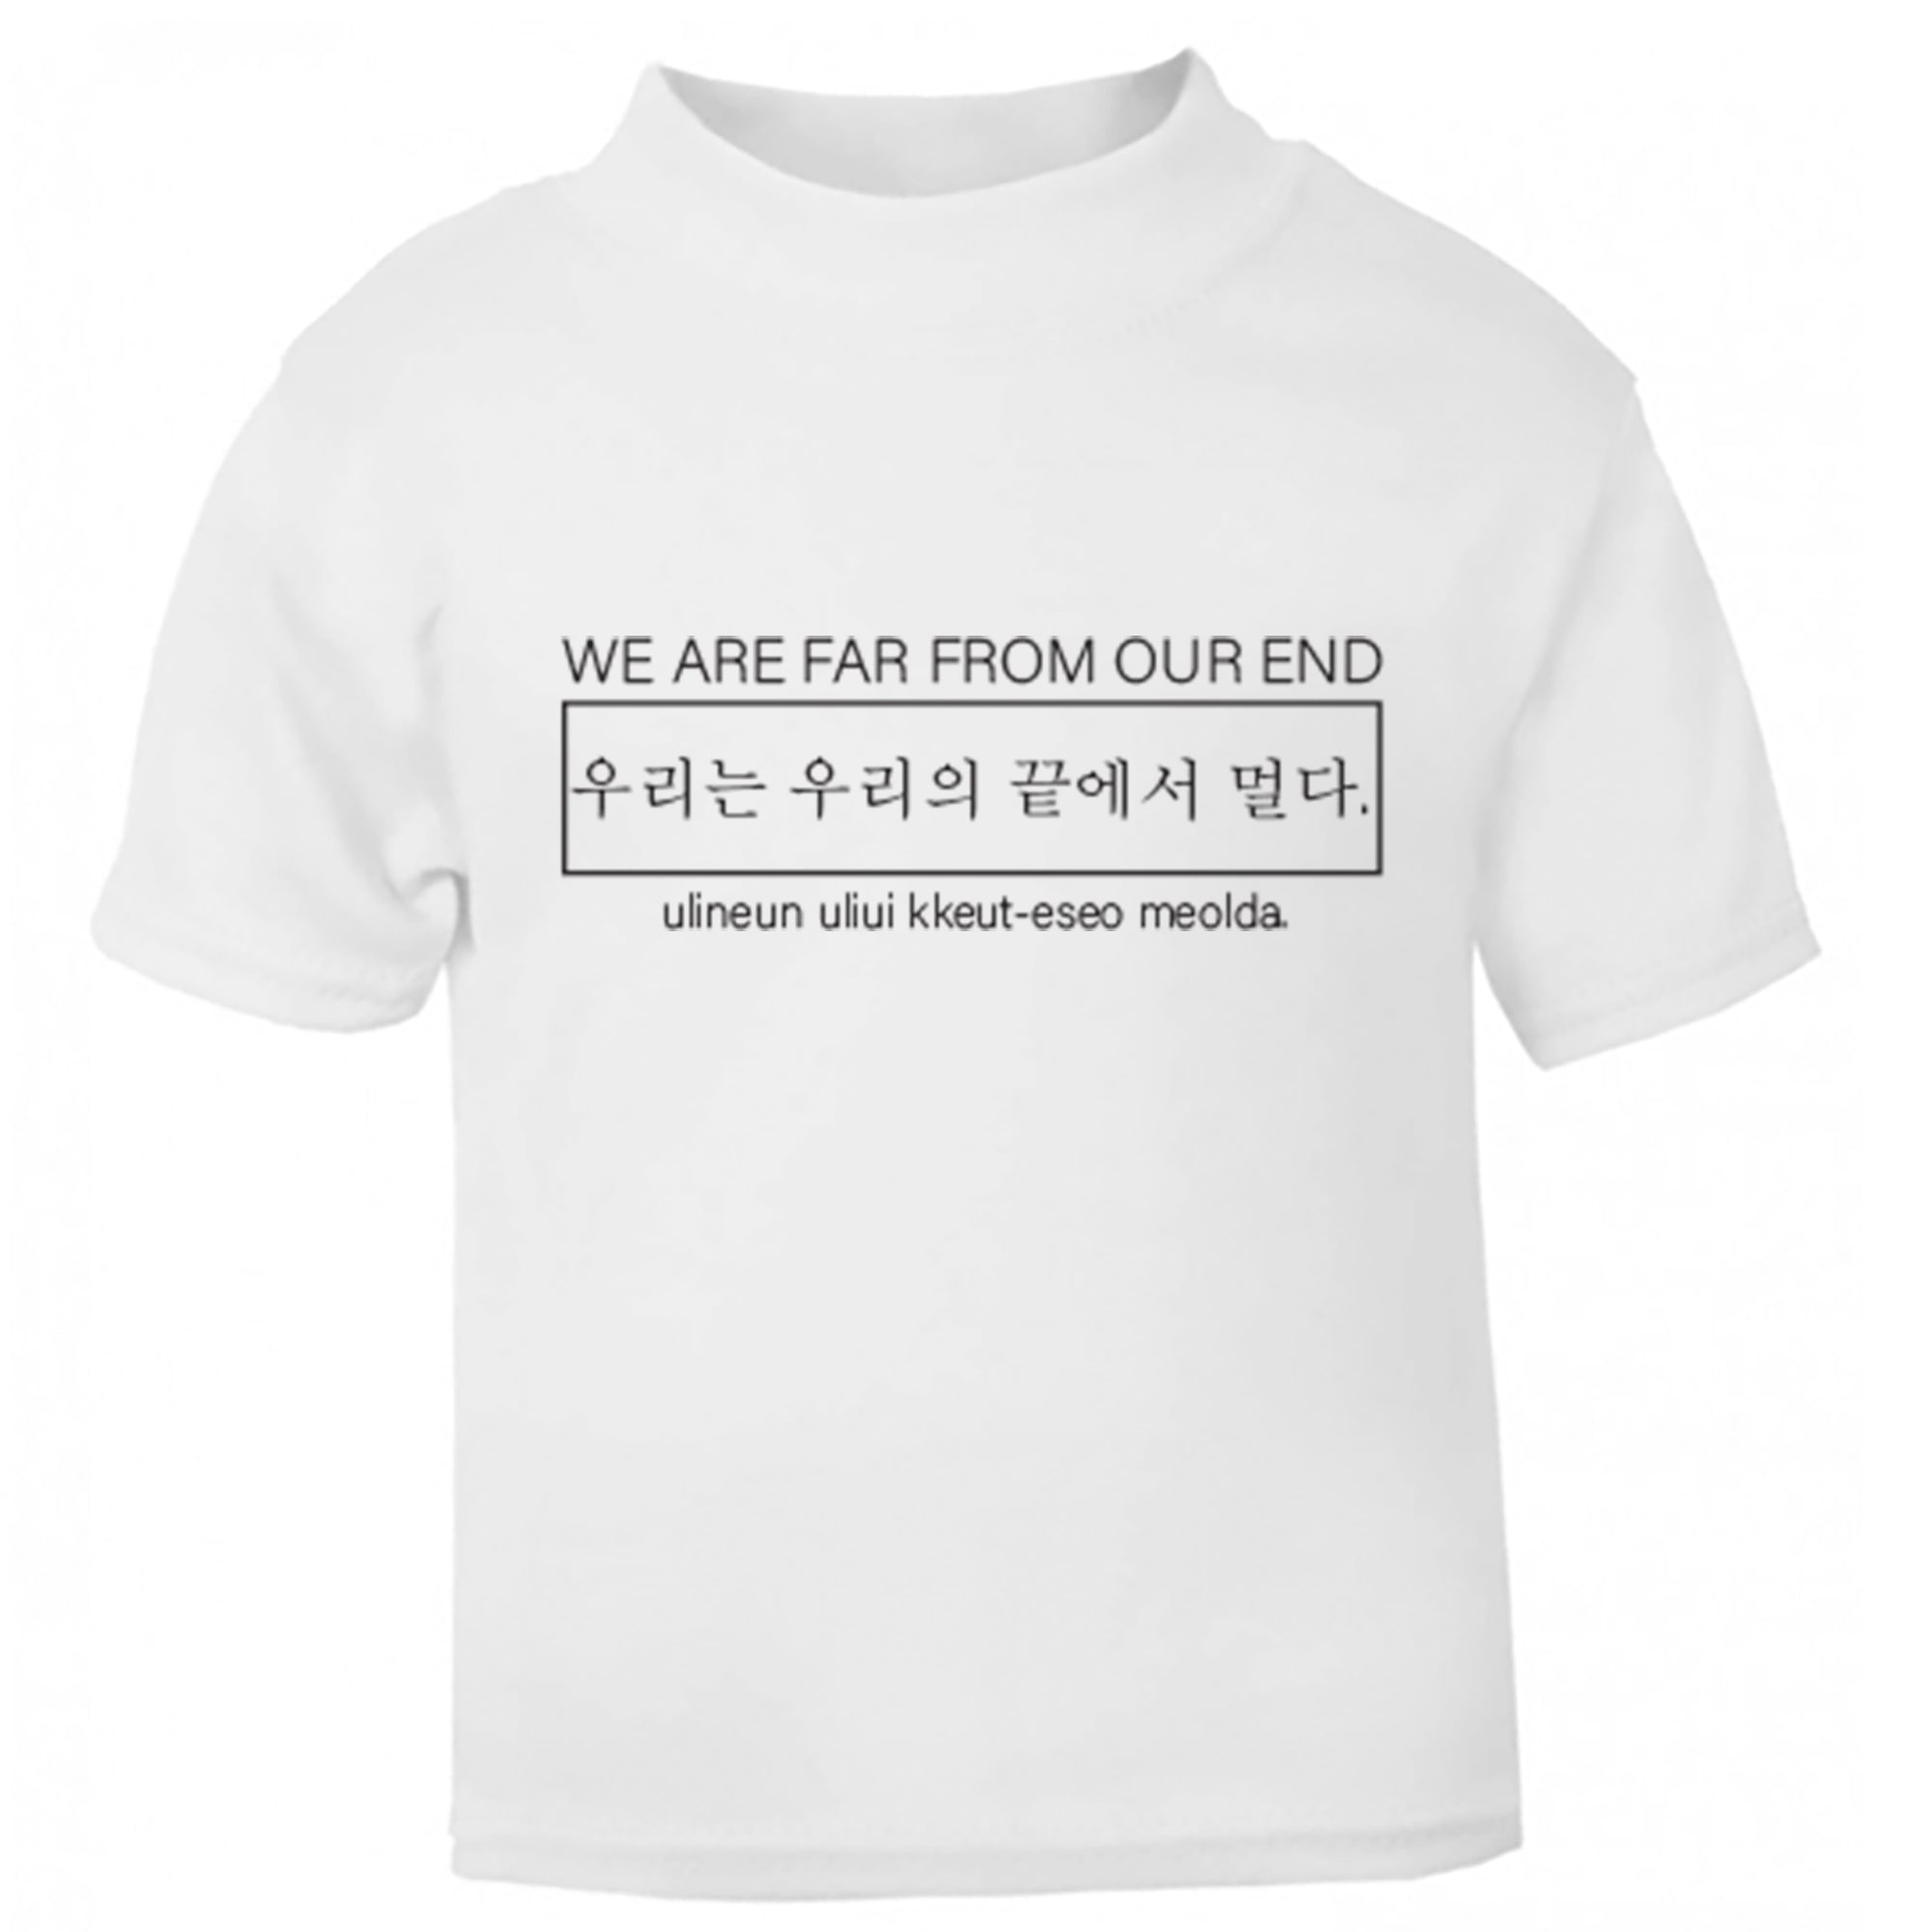 We Are Far From Our End Childrens Ages 3/4-12/14 Unisex Fit T-Shirt S0627 - Illustrated Identity Ltd.